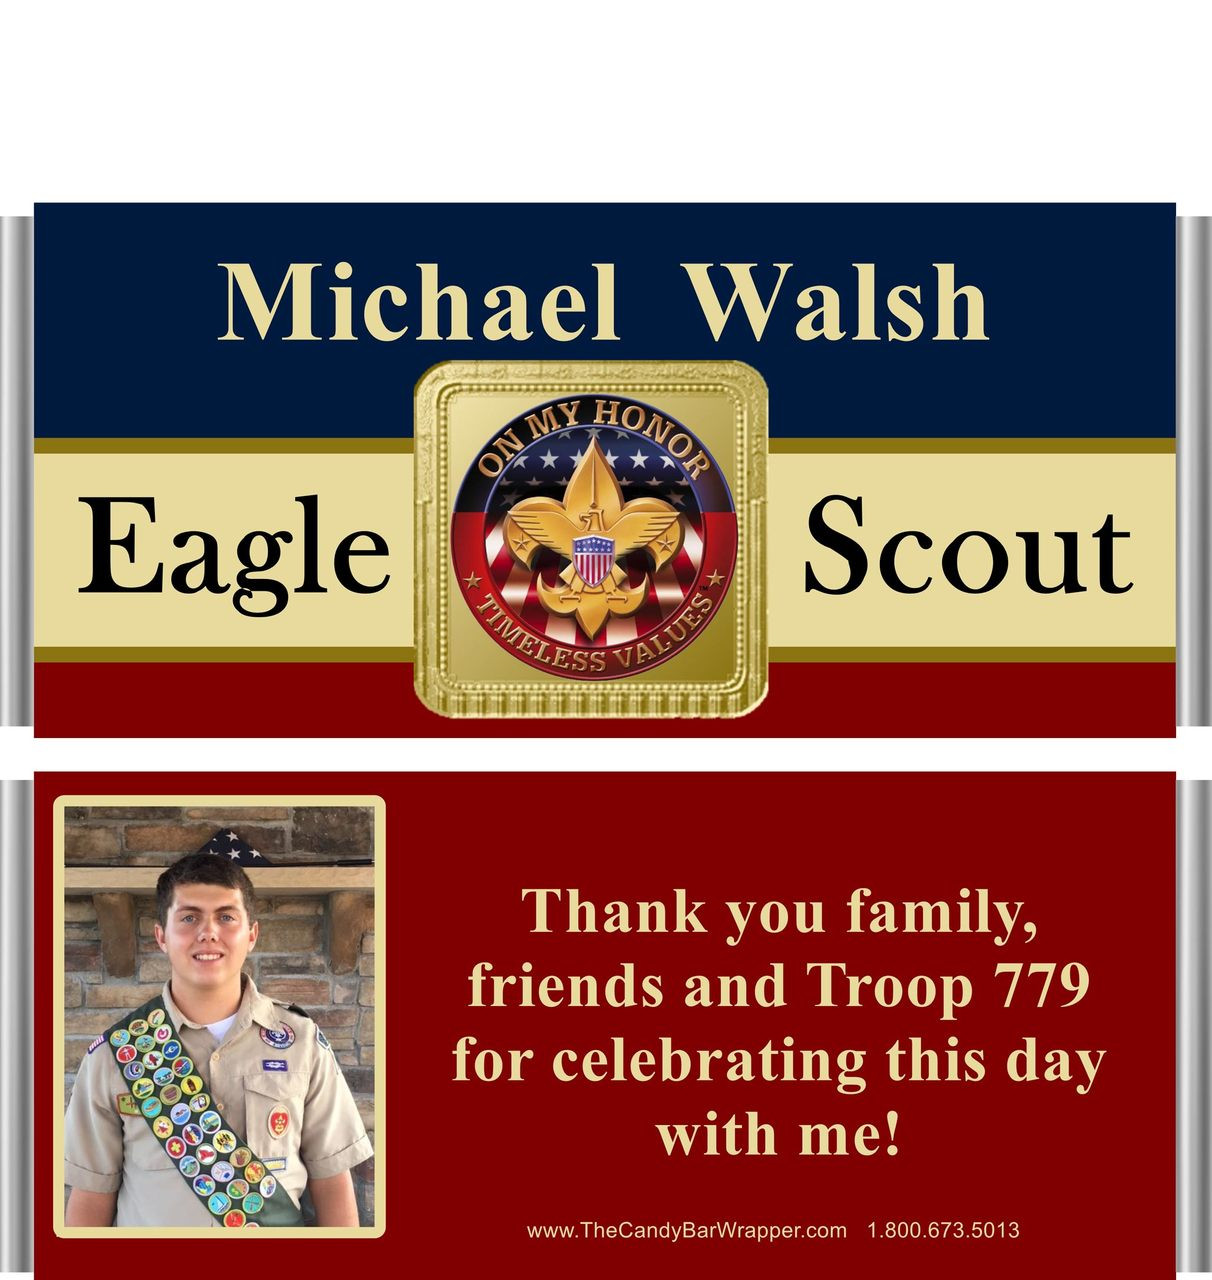 Eagle Scout Candy Wrappers At The Candy Bar Wrapper